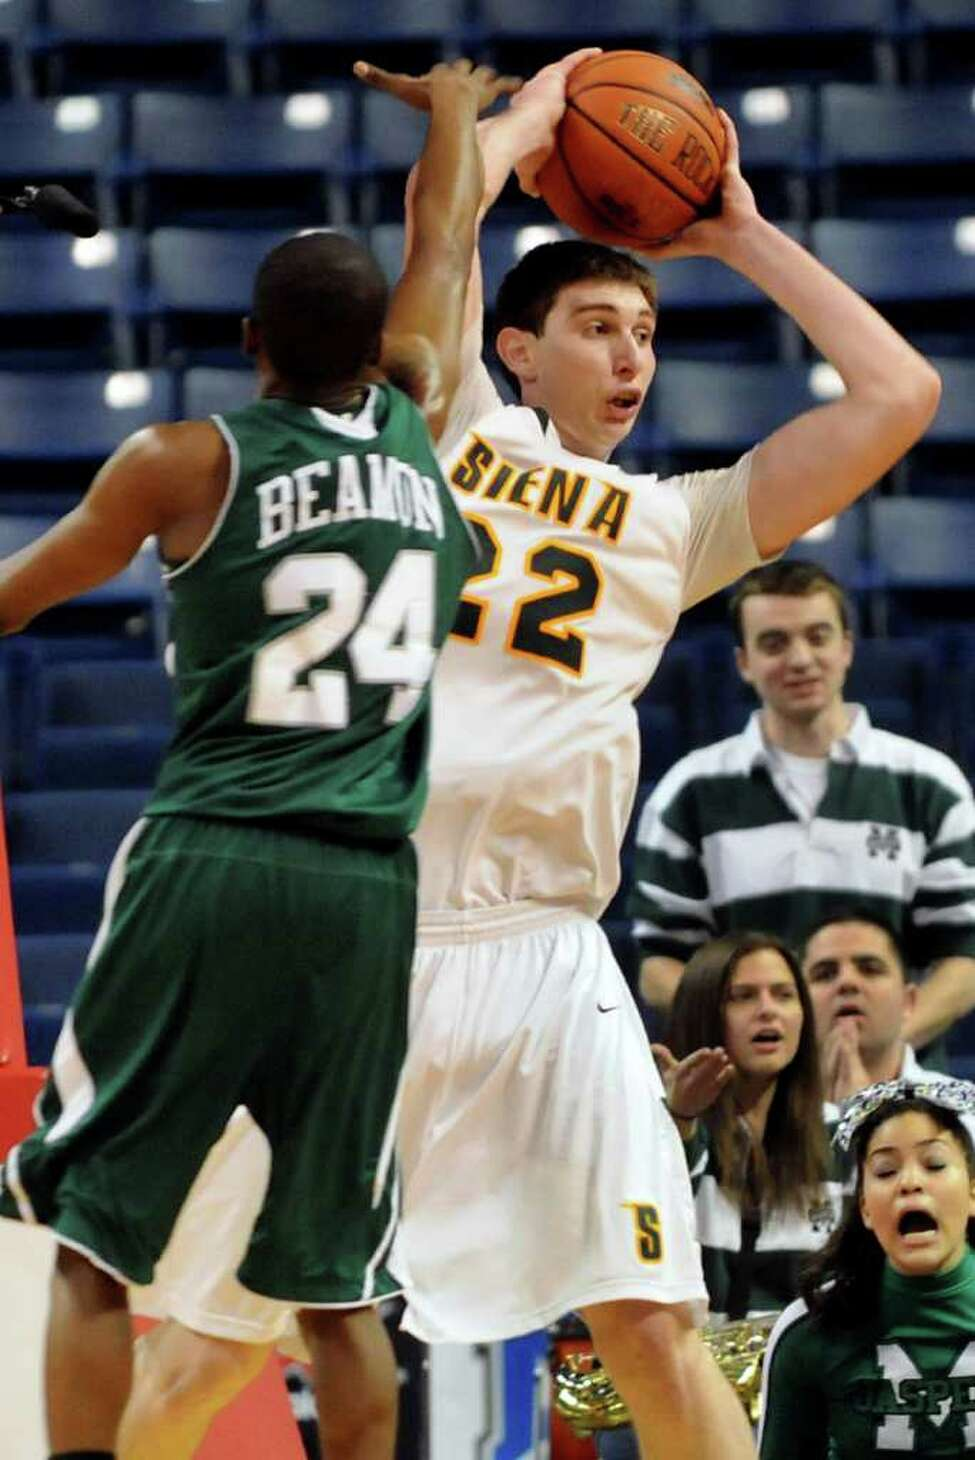 Siena's Ryan Rossiter (22), right, grabs the rebound over Manhattan's George Beamon (24) during their basketball game at the MAAC Championships on Friday, March 4, 2011, at Webster Band Arena at Harbor Yard in Bridgeport, Conn. (Cindy Schultz / Times Union)